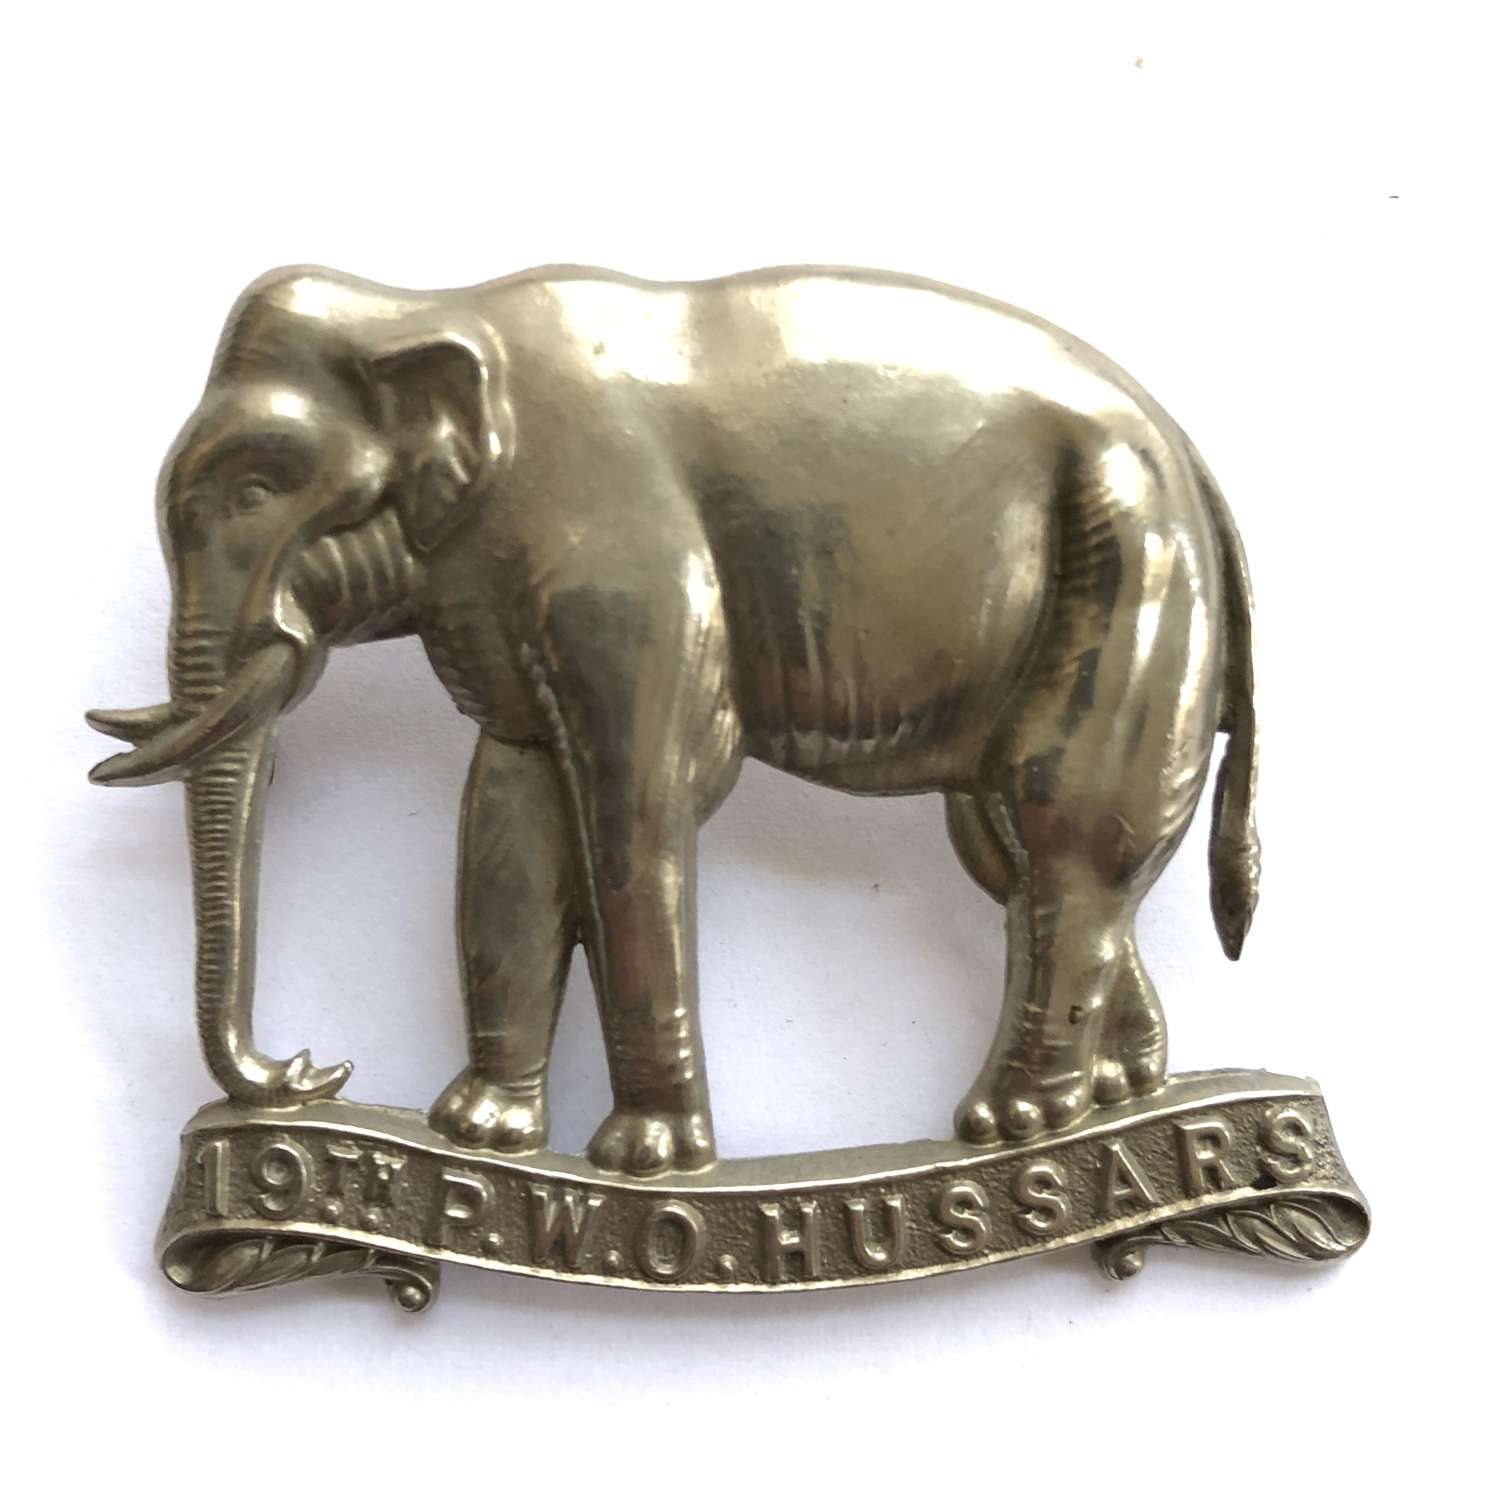 19th Princess of Wales's Own Hussars cap badge circa 1898-1902